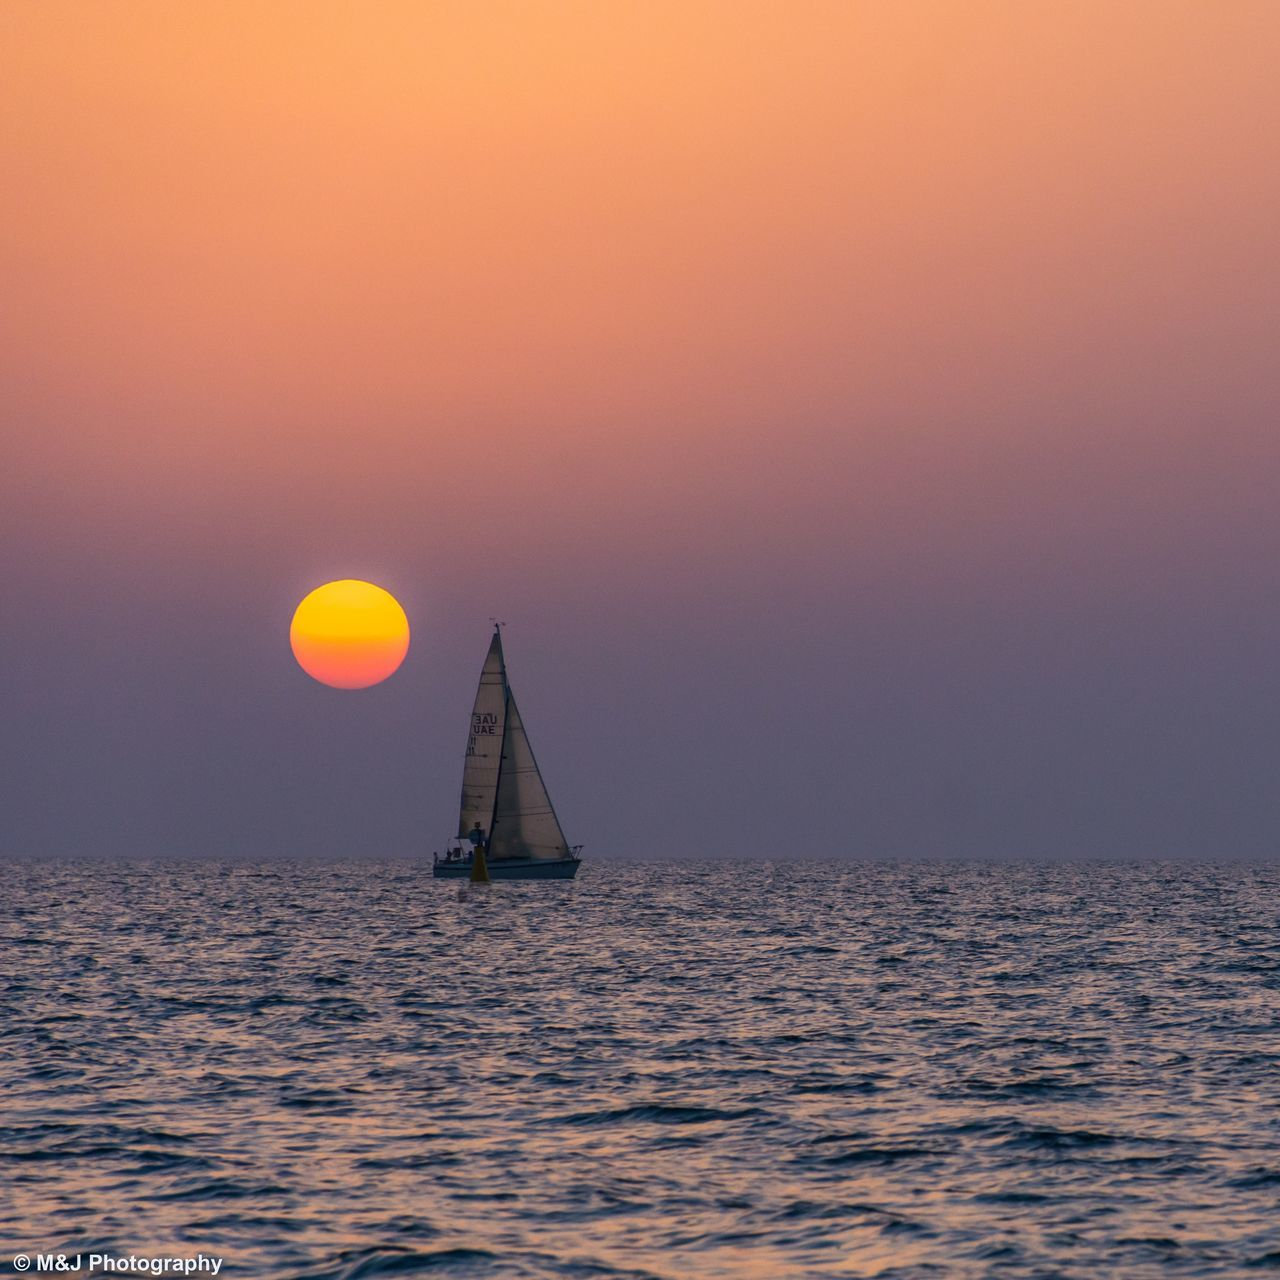 sunset, sea, water, beauty in nature, sun, scenics, horizon over water, nature, tranquil scene, tranquility, orange color, waterfront, idyllic, outdoors, sky, no people, sailboat, transportation, sunlight, nautical vessel, sailing, clear sky, day